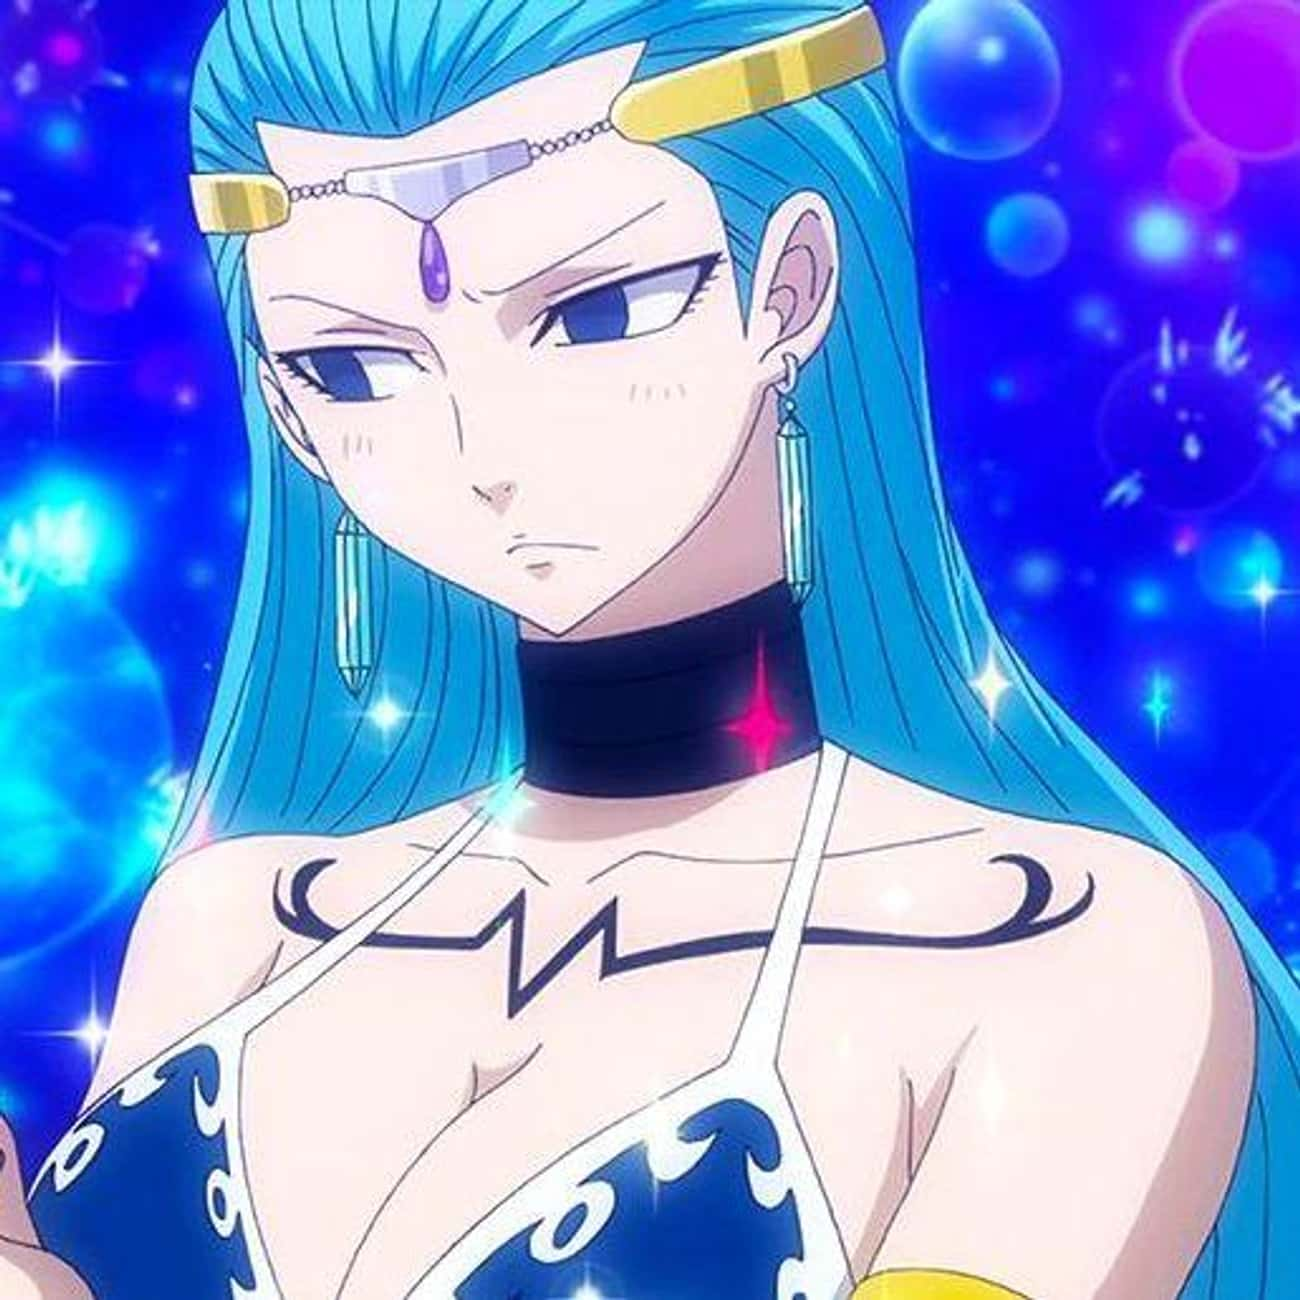 Aquarius is listed (or ranked) 3 on the list The Best Anime Characters Who Wear Chokers